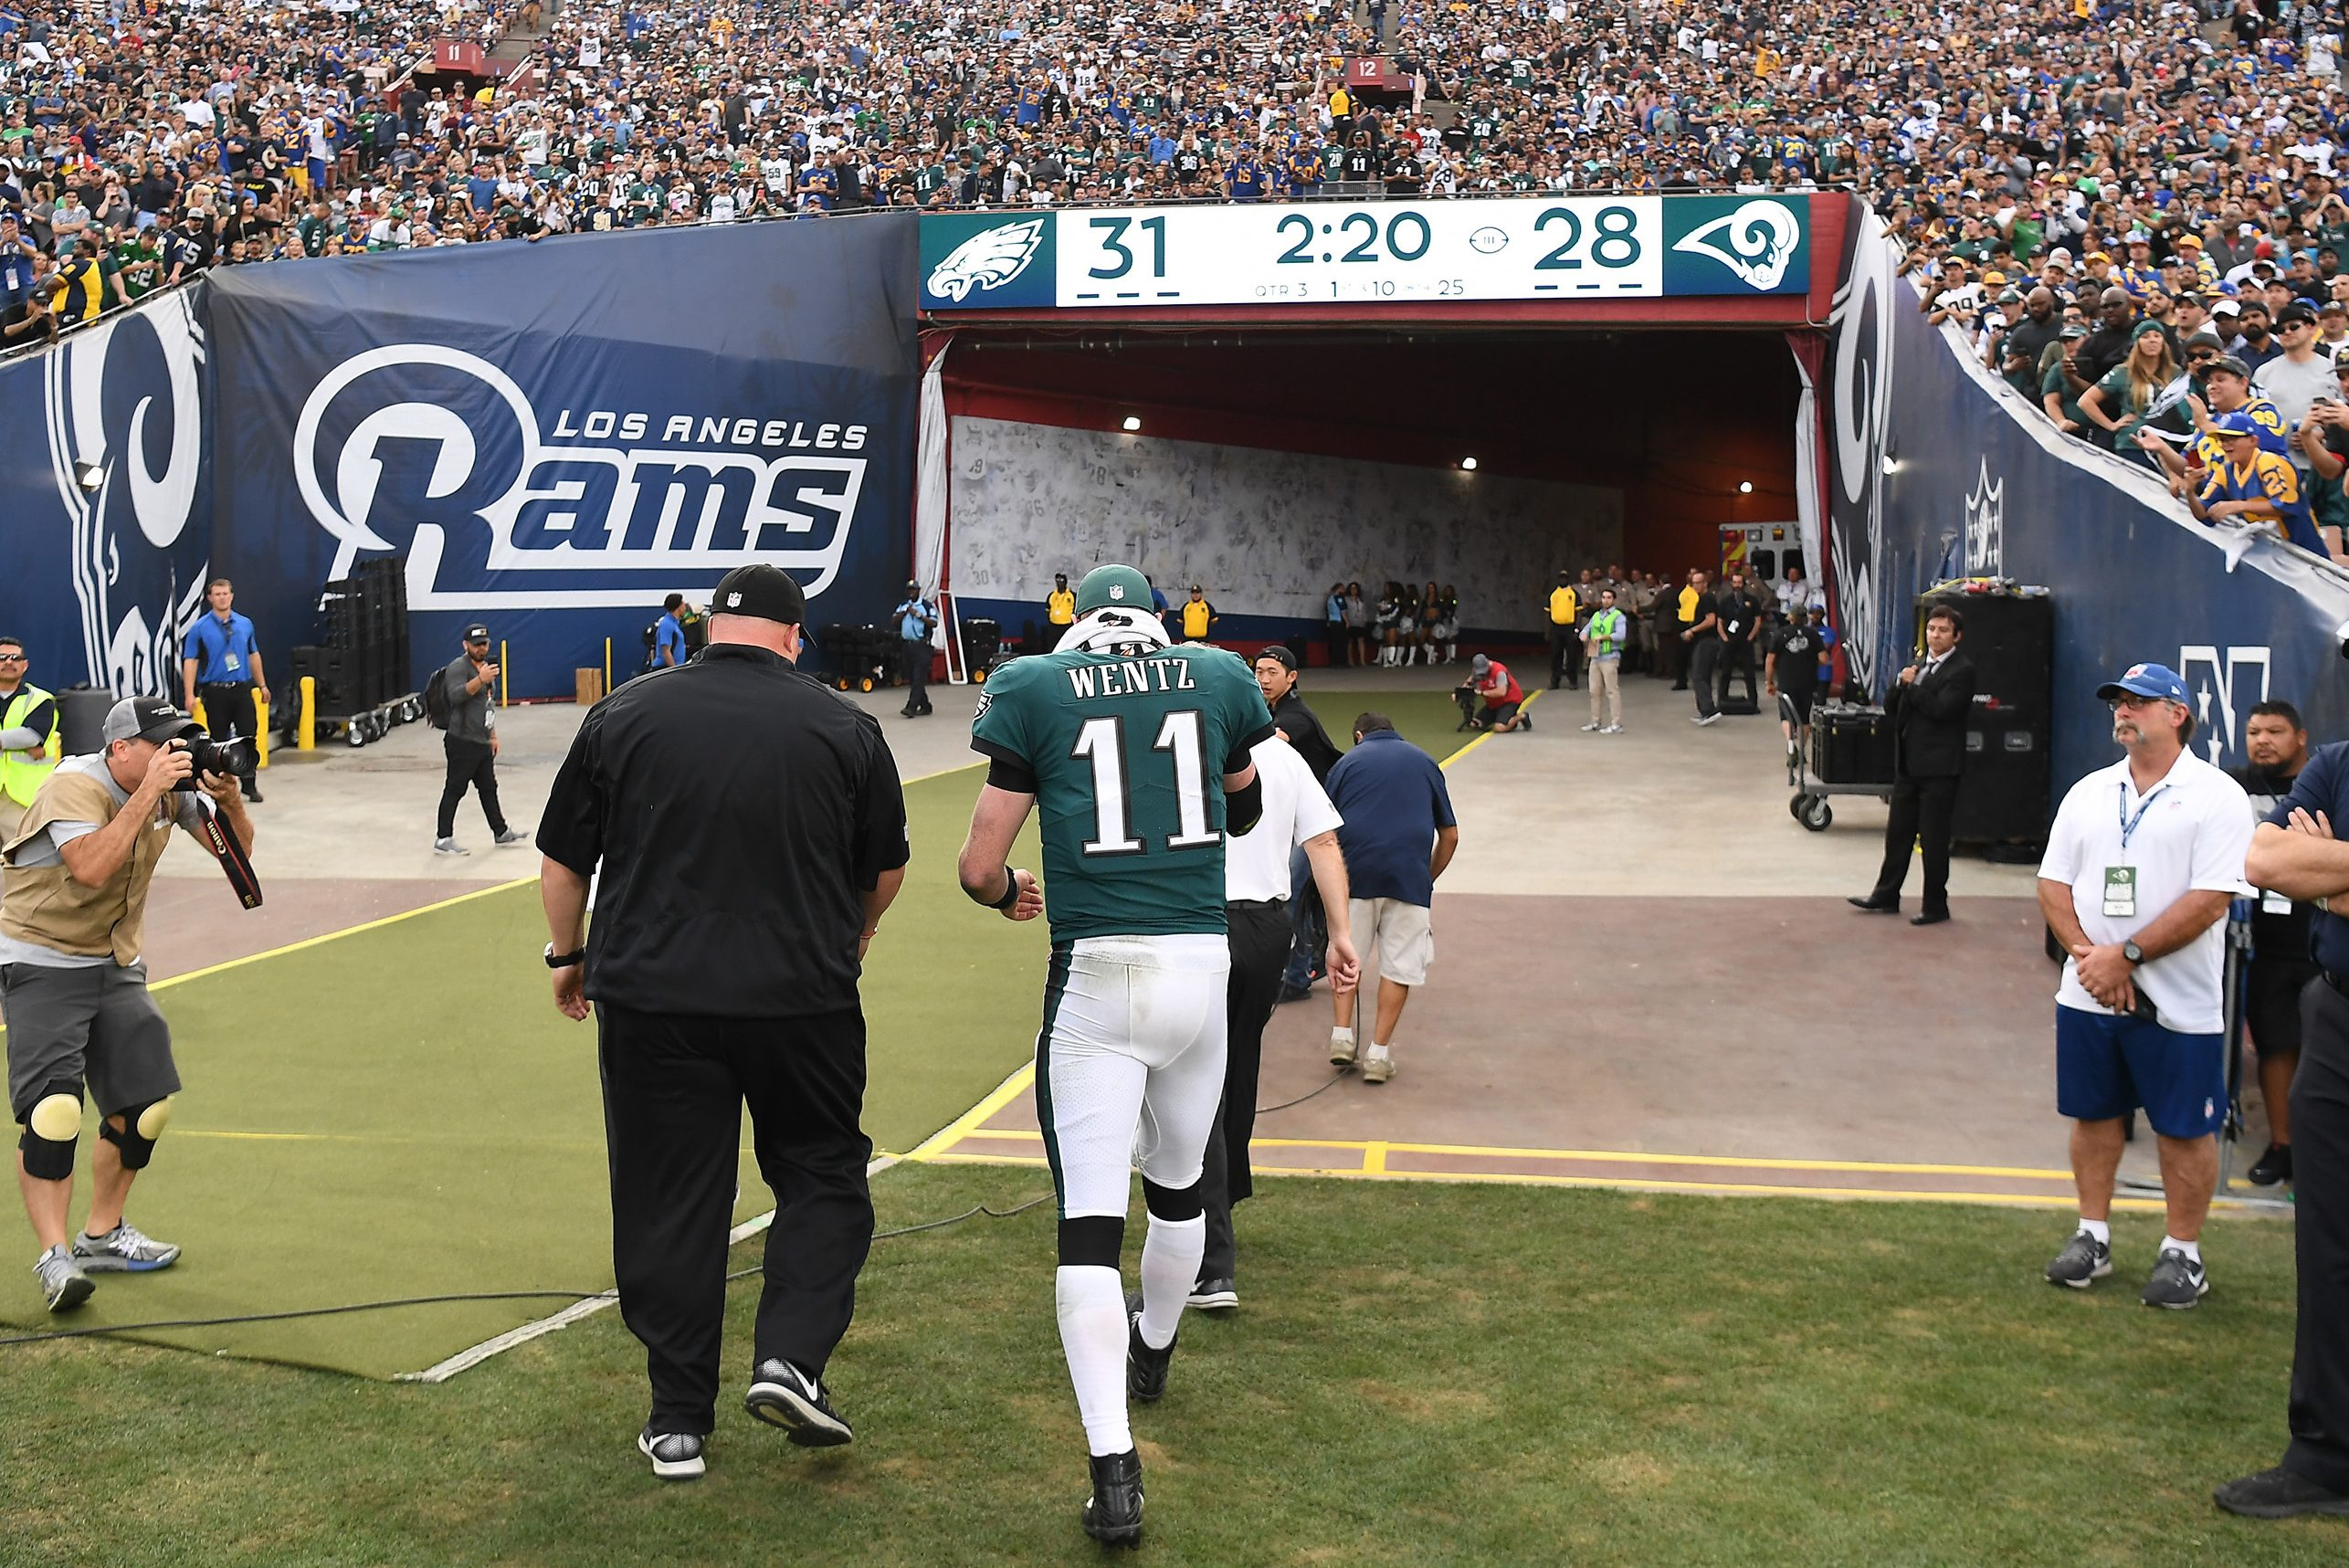 Philadelphia Eagles quarterback Carson Wentz walks off the field after injuring his leg against the Los Angeles Rams on Sunday, Dec. 10, 2017 at the Coliseum in Los Angeles, Calif. (Wally Skalij/Los Angeles Times/TNS)